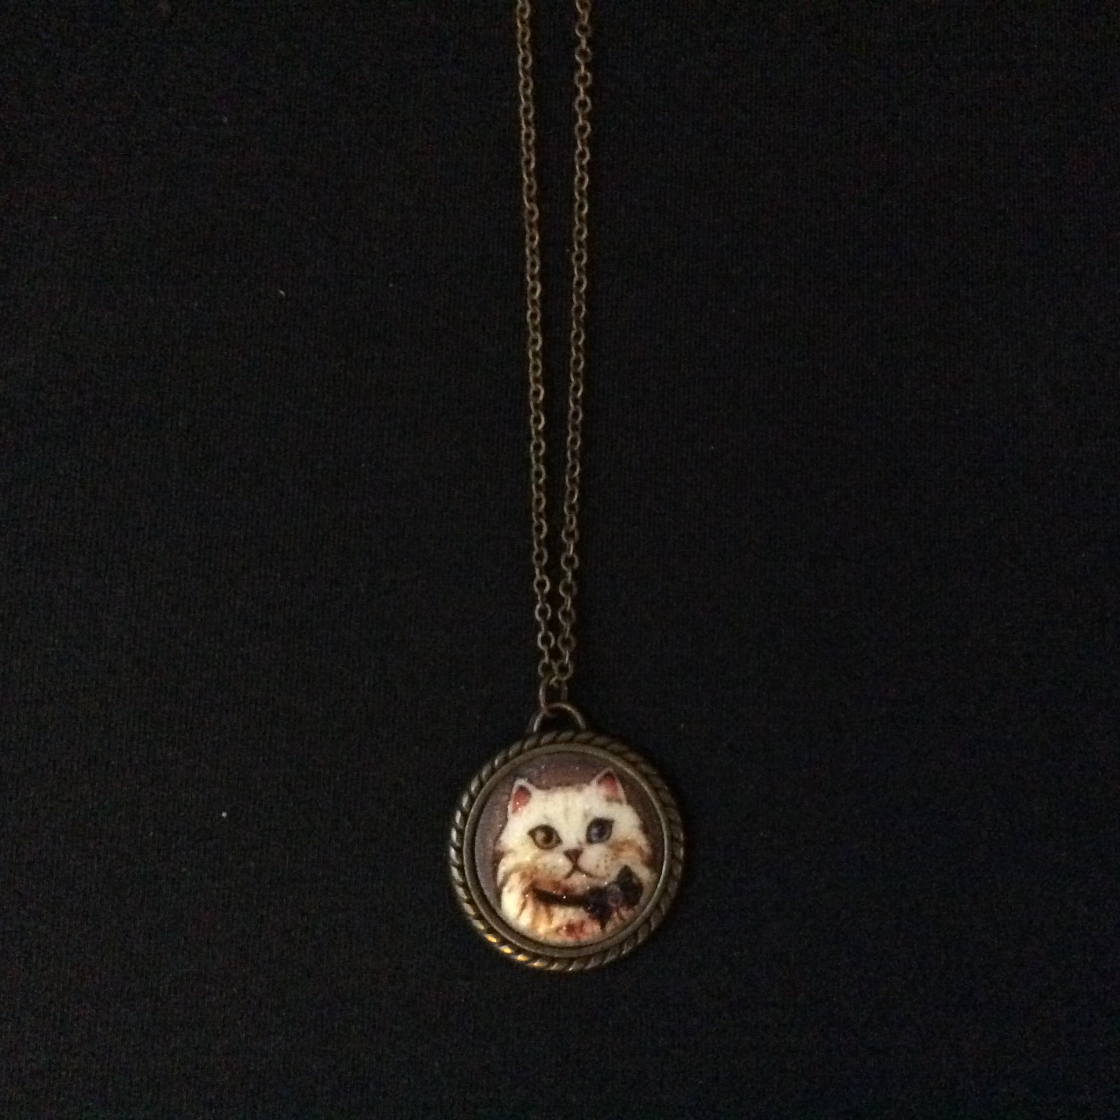 Circle Framed Kitty Charm Necklace